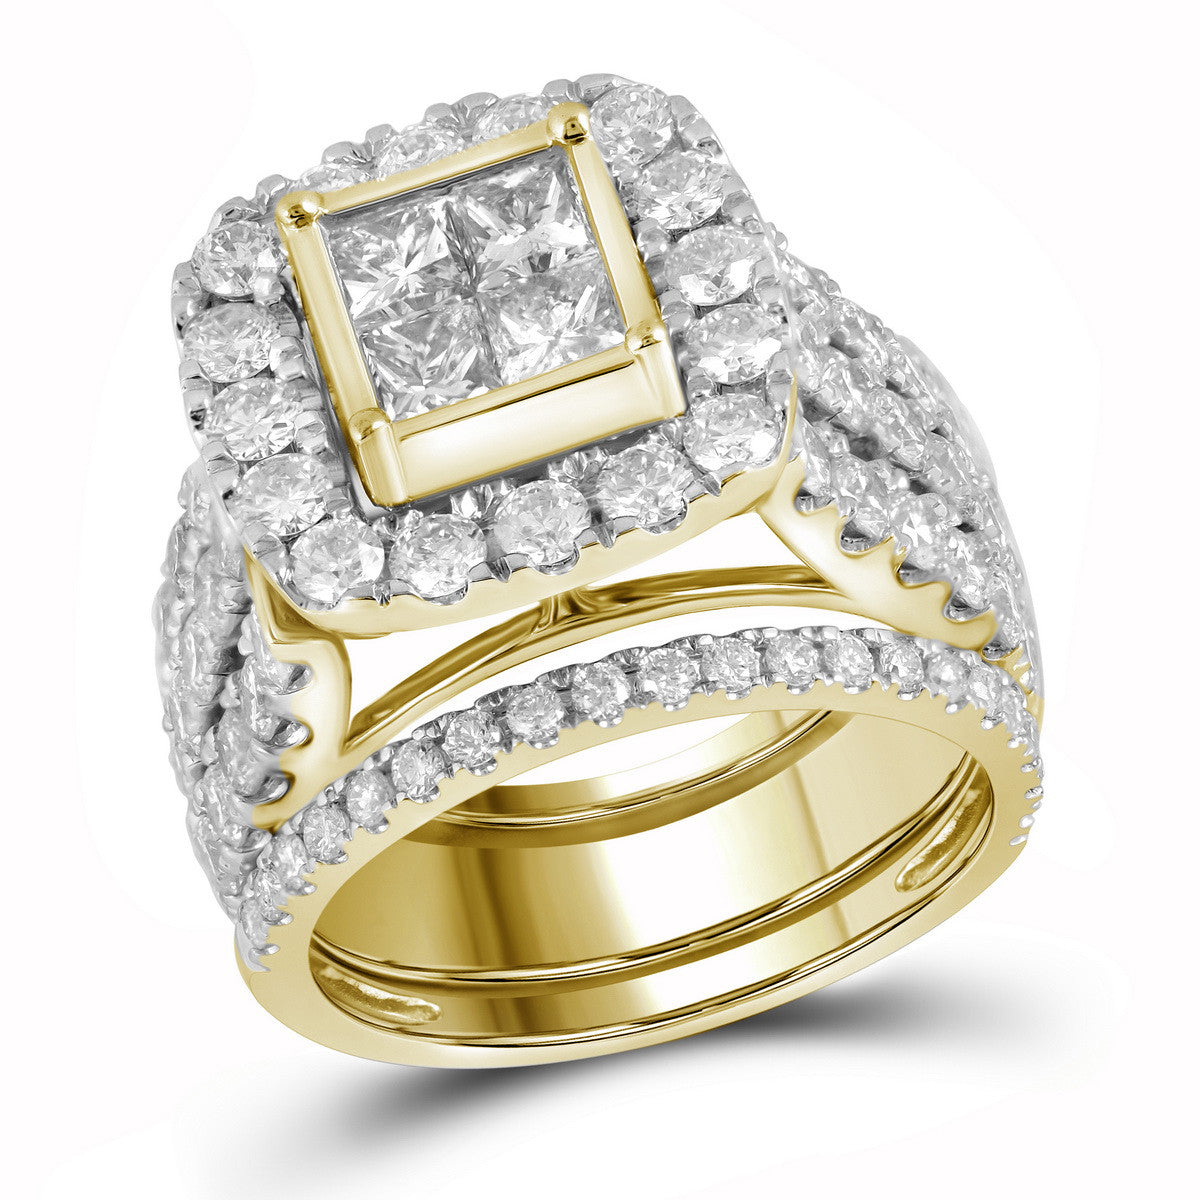 14kt Yellow Gold Womens Princess Diamond 3-Piece Bridal Wedding Engagement Ring Band Set 4.00 Cttw 110610 - shirin-diamonds